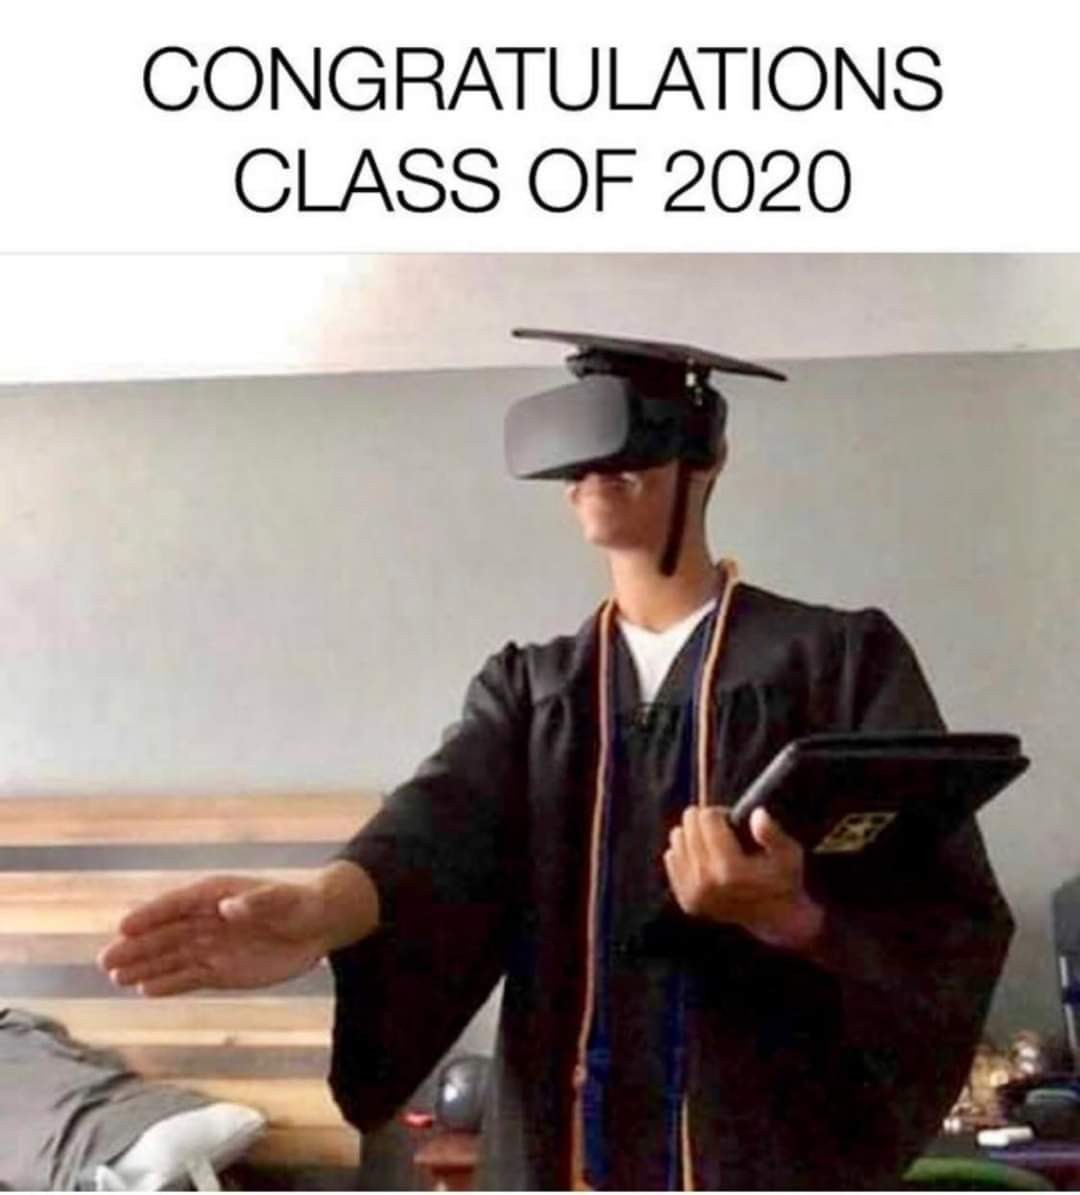 Class of 2020 be like...